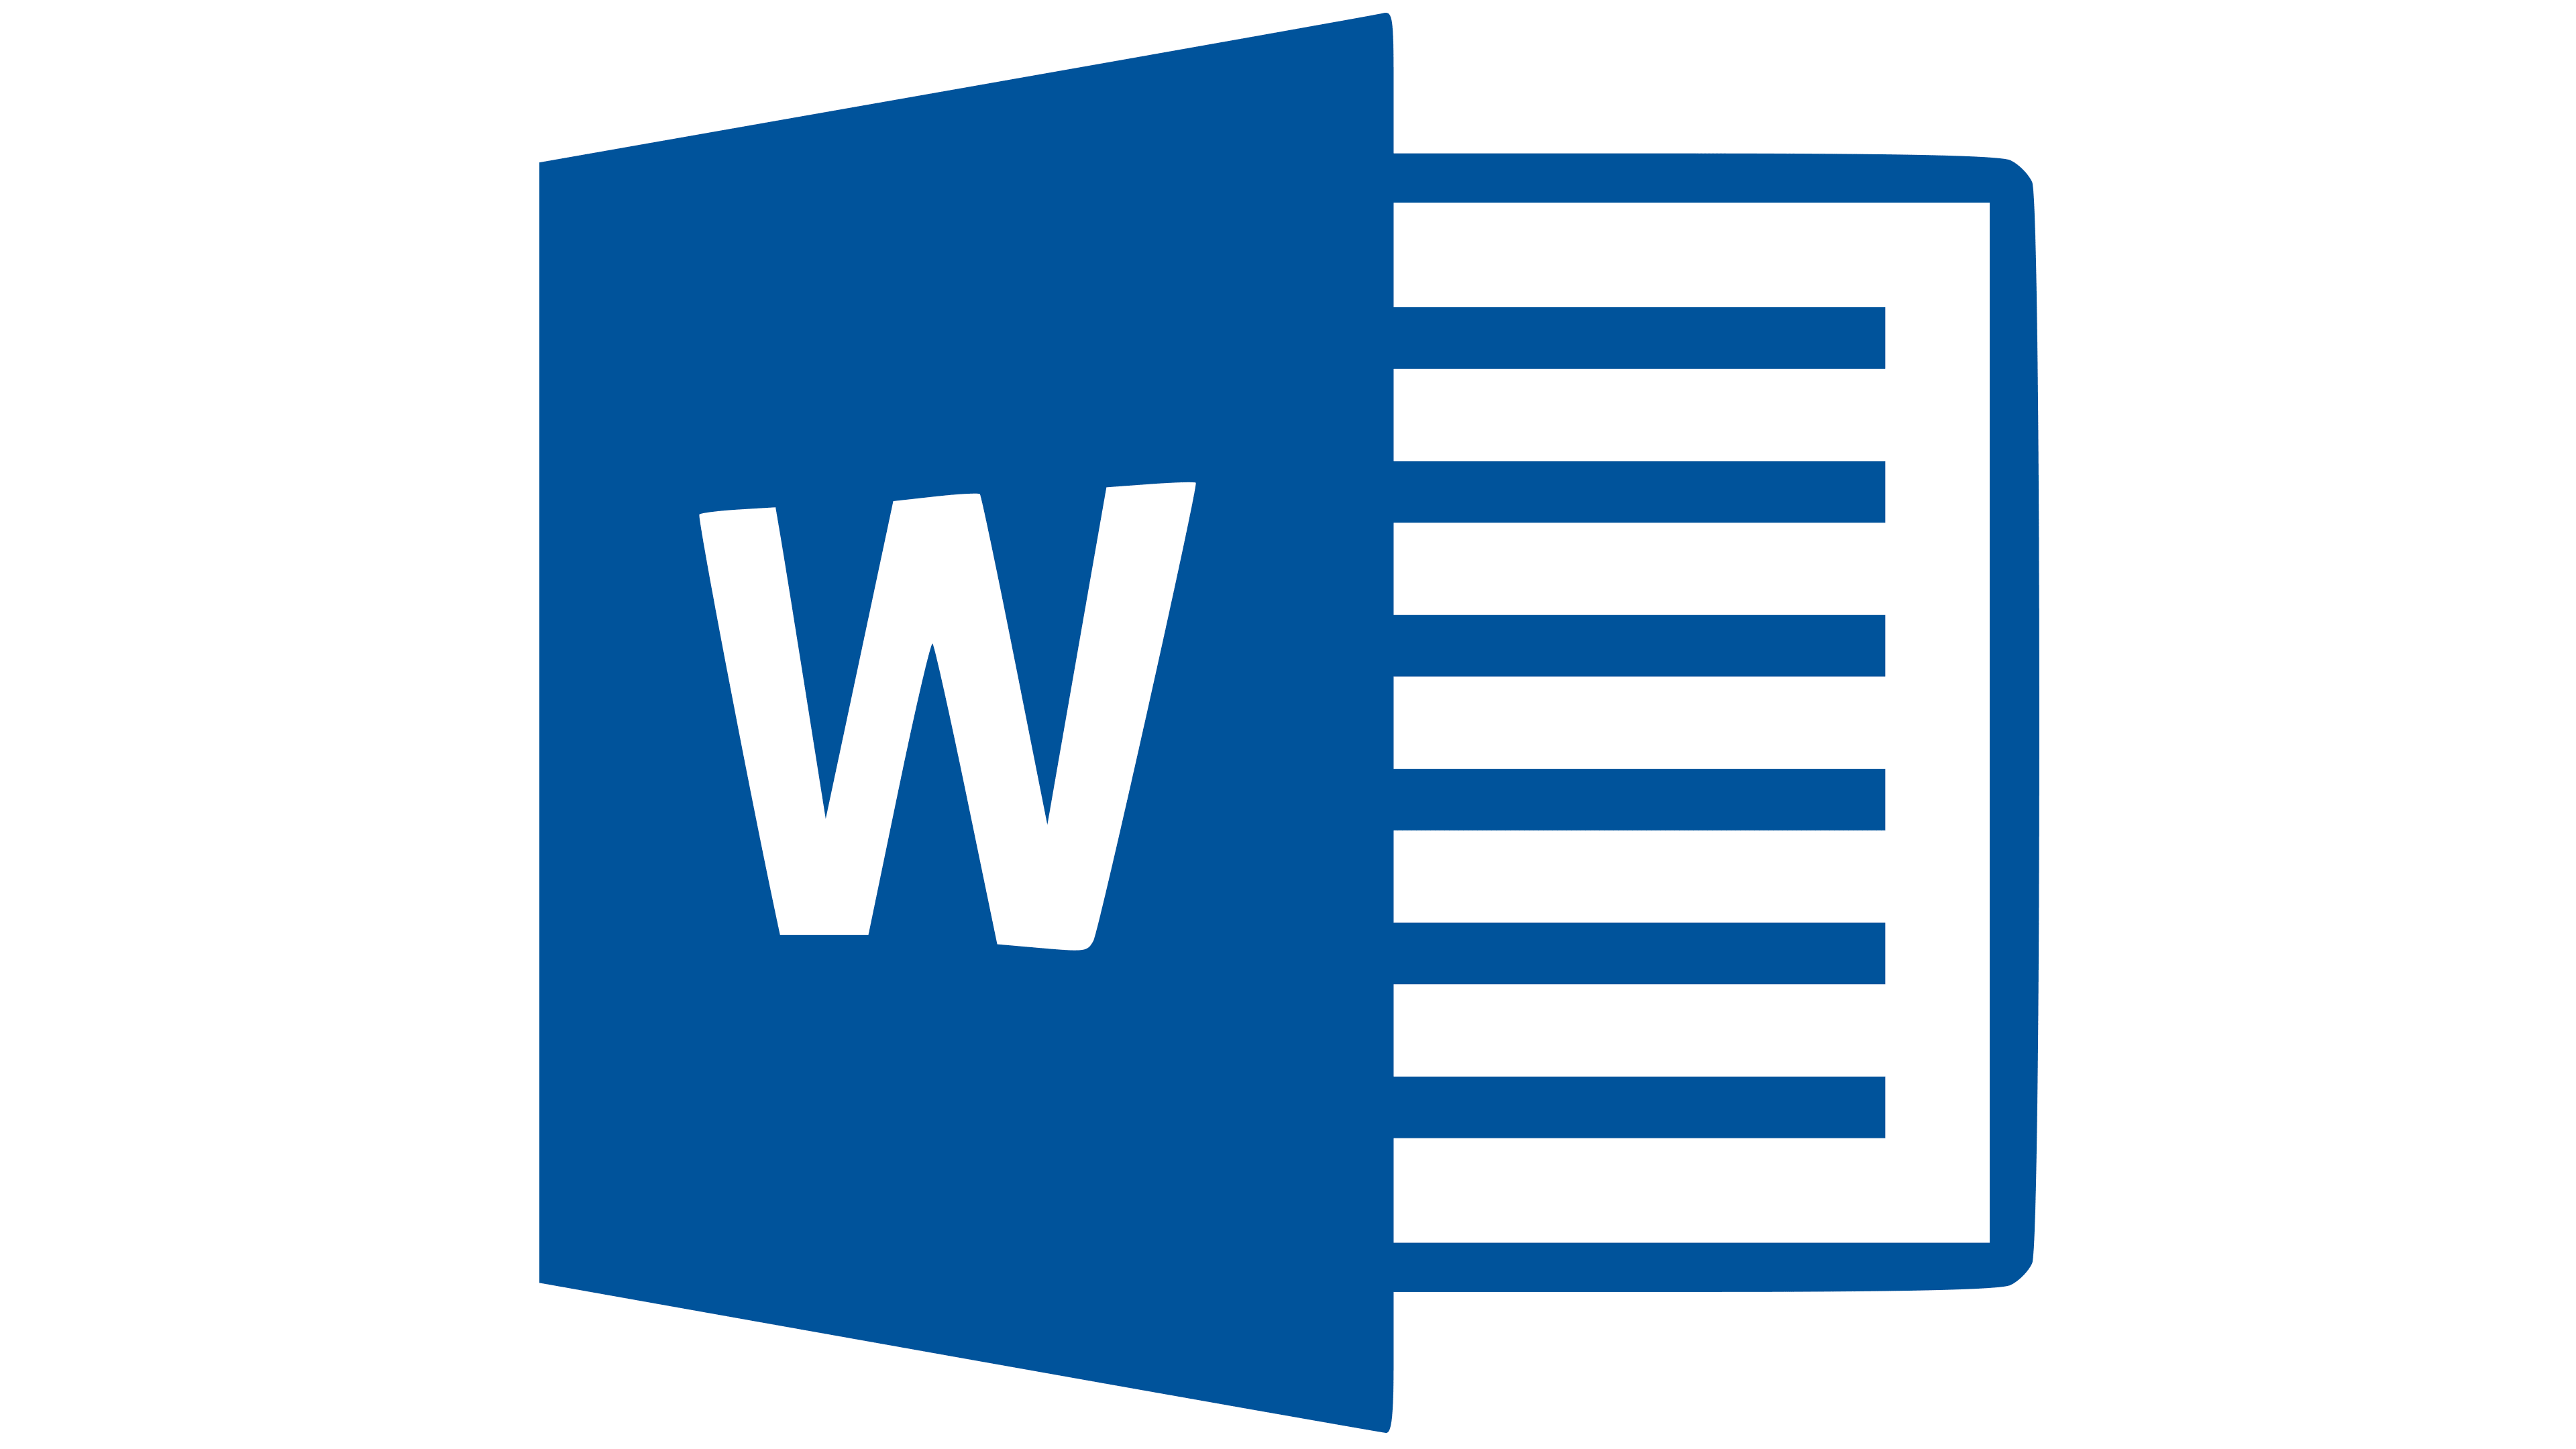 How to Recover Unsaved Word Document on Windows 10